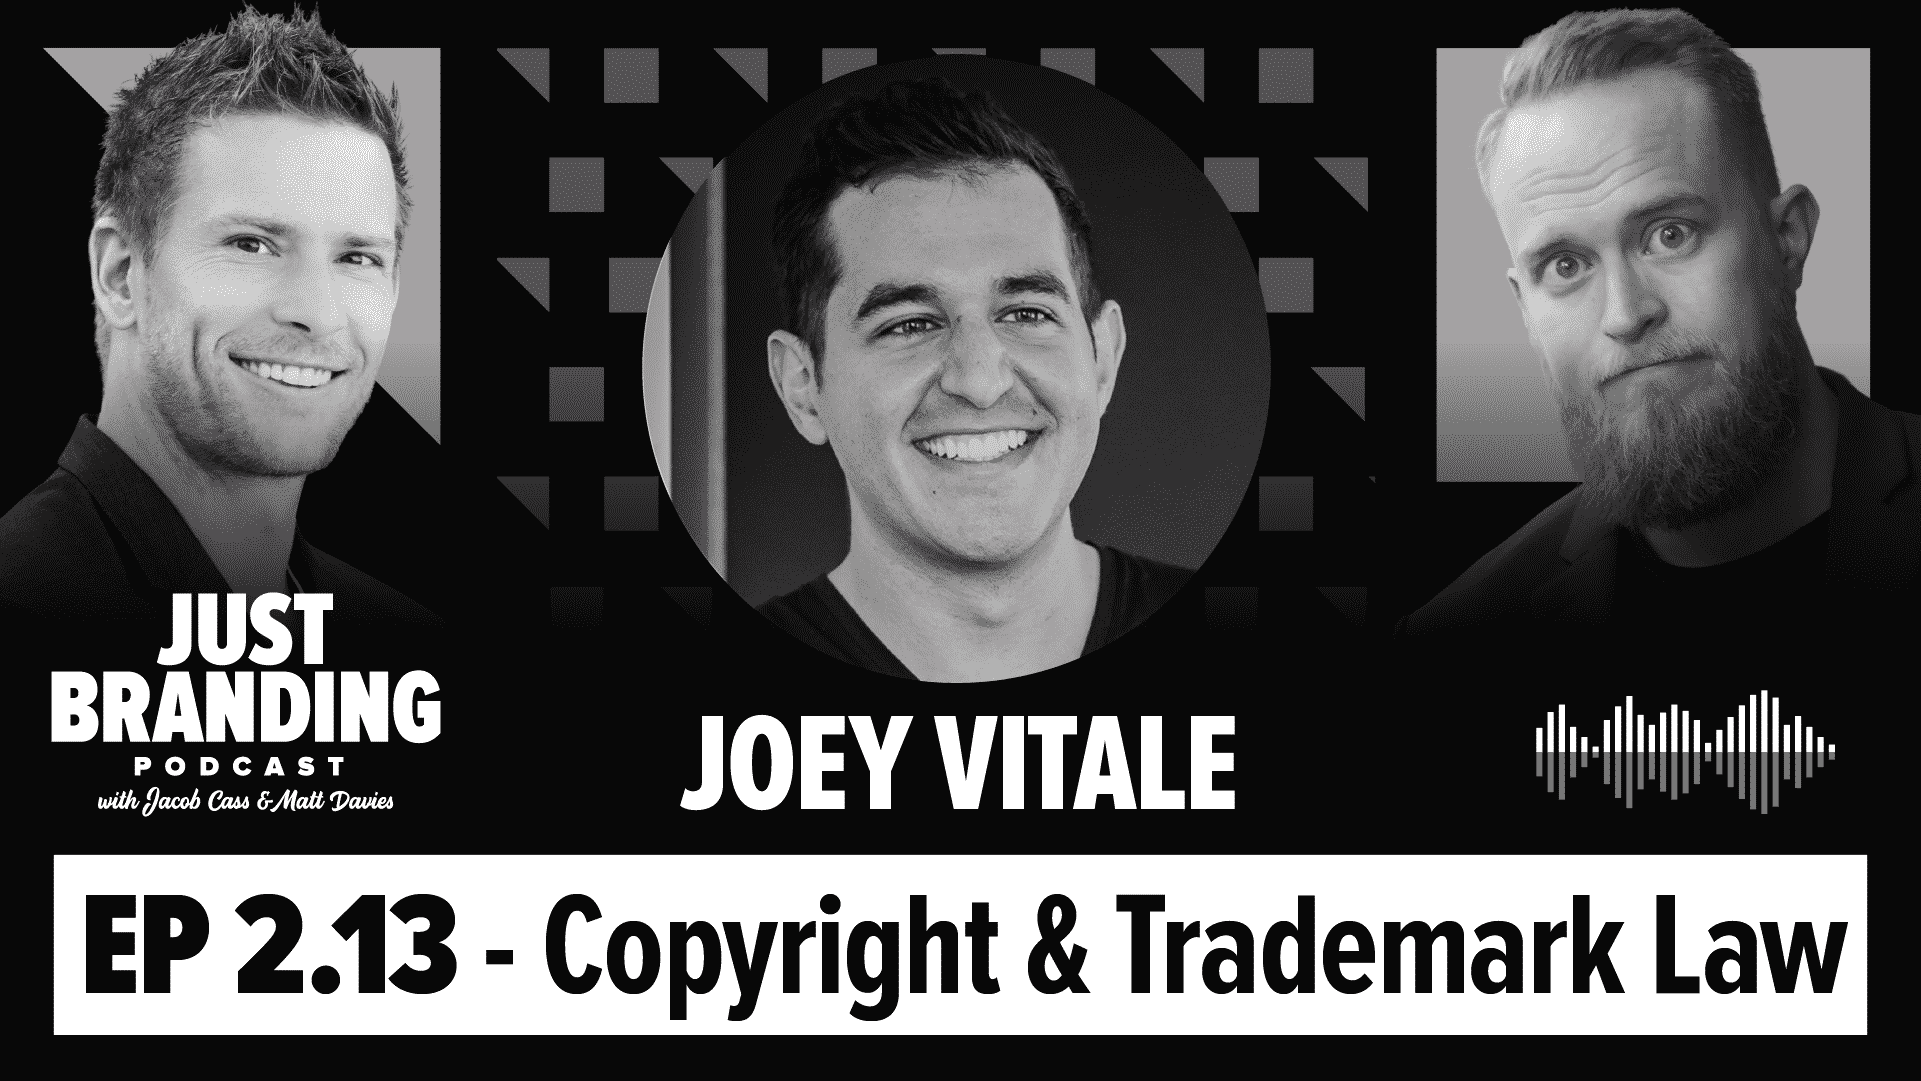 Copyright & Trademark Law with Joey Vitale